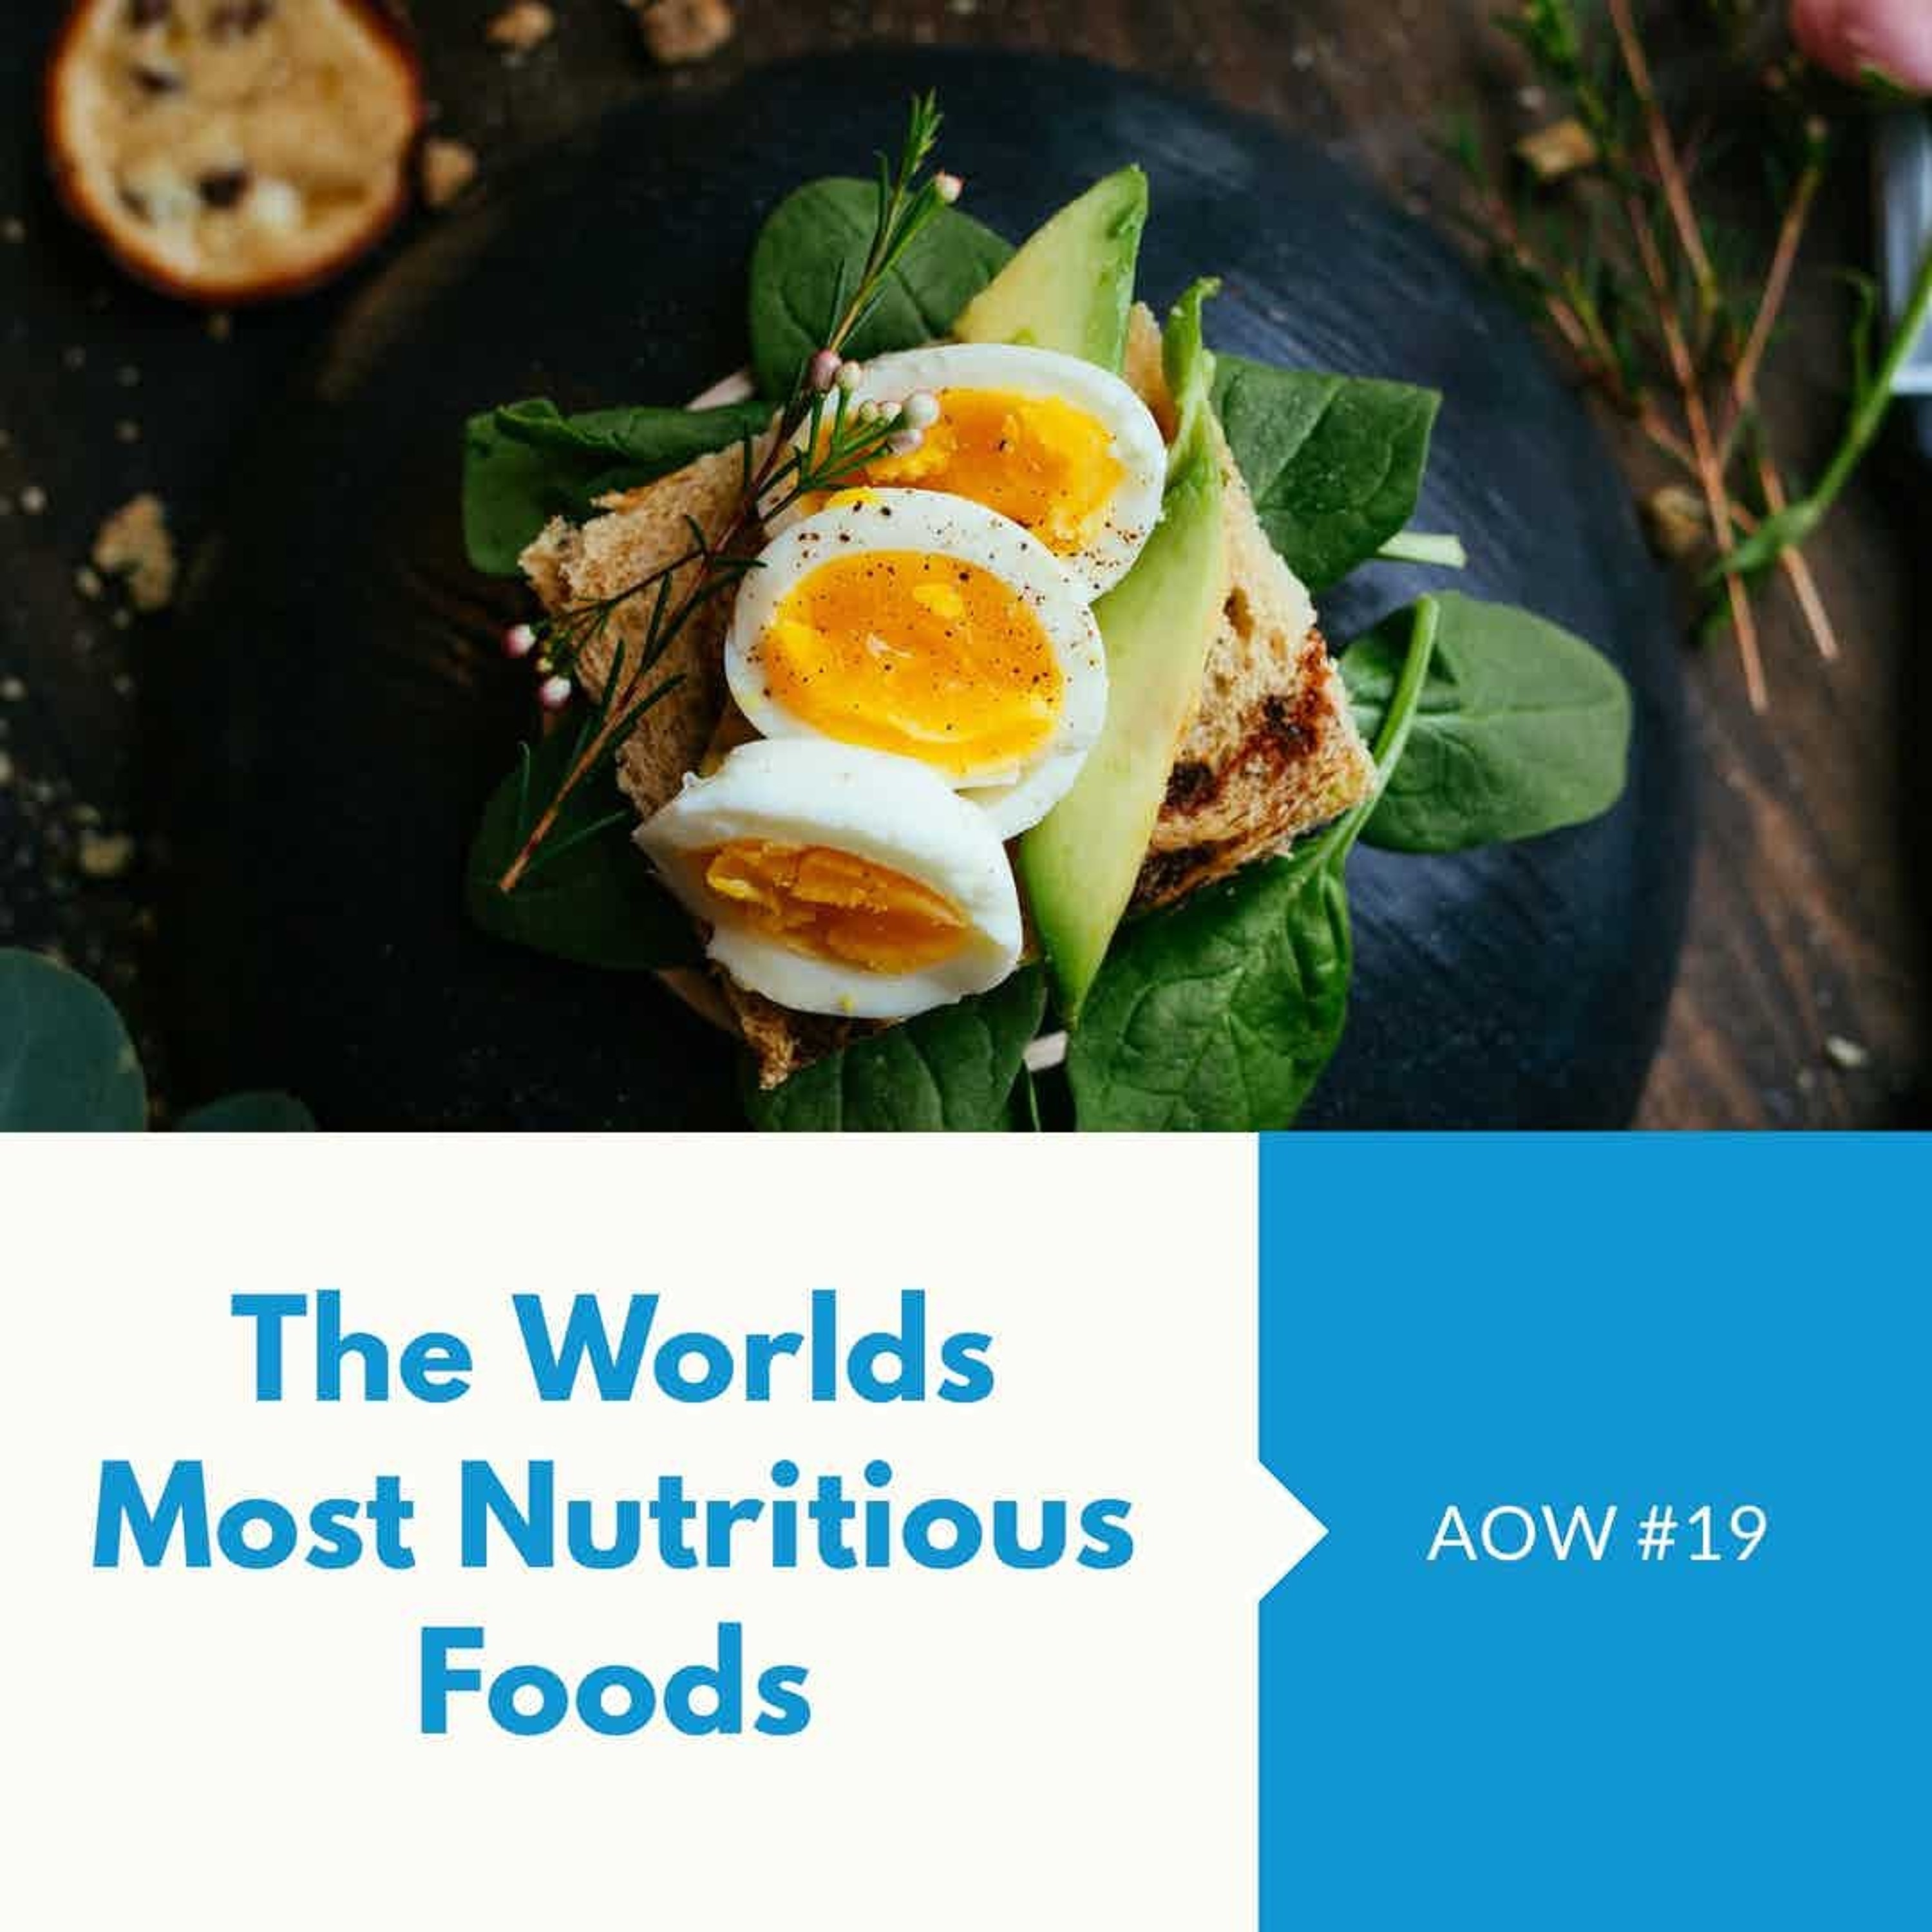 AOW 19 The World's Most Nutritious Foods